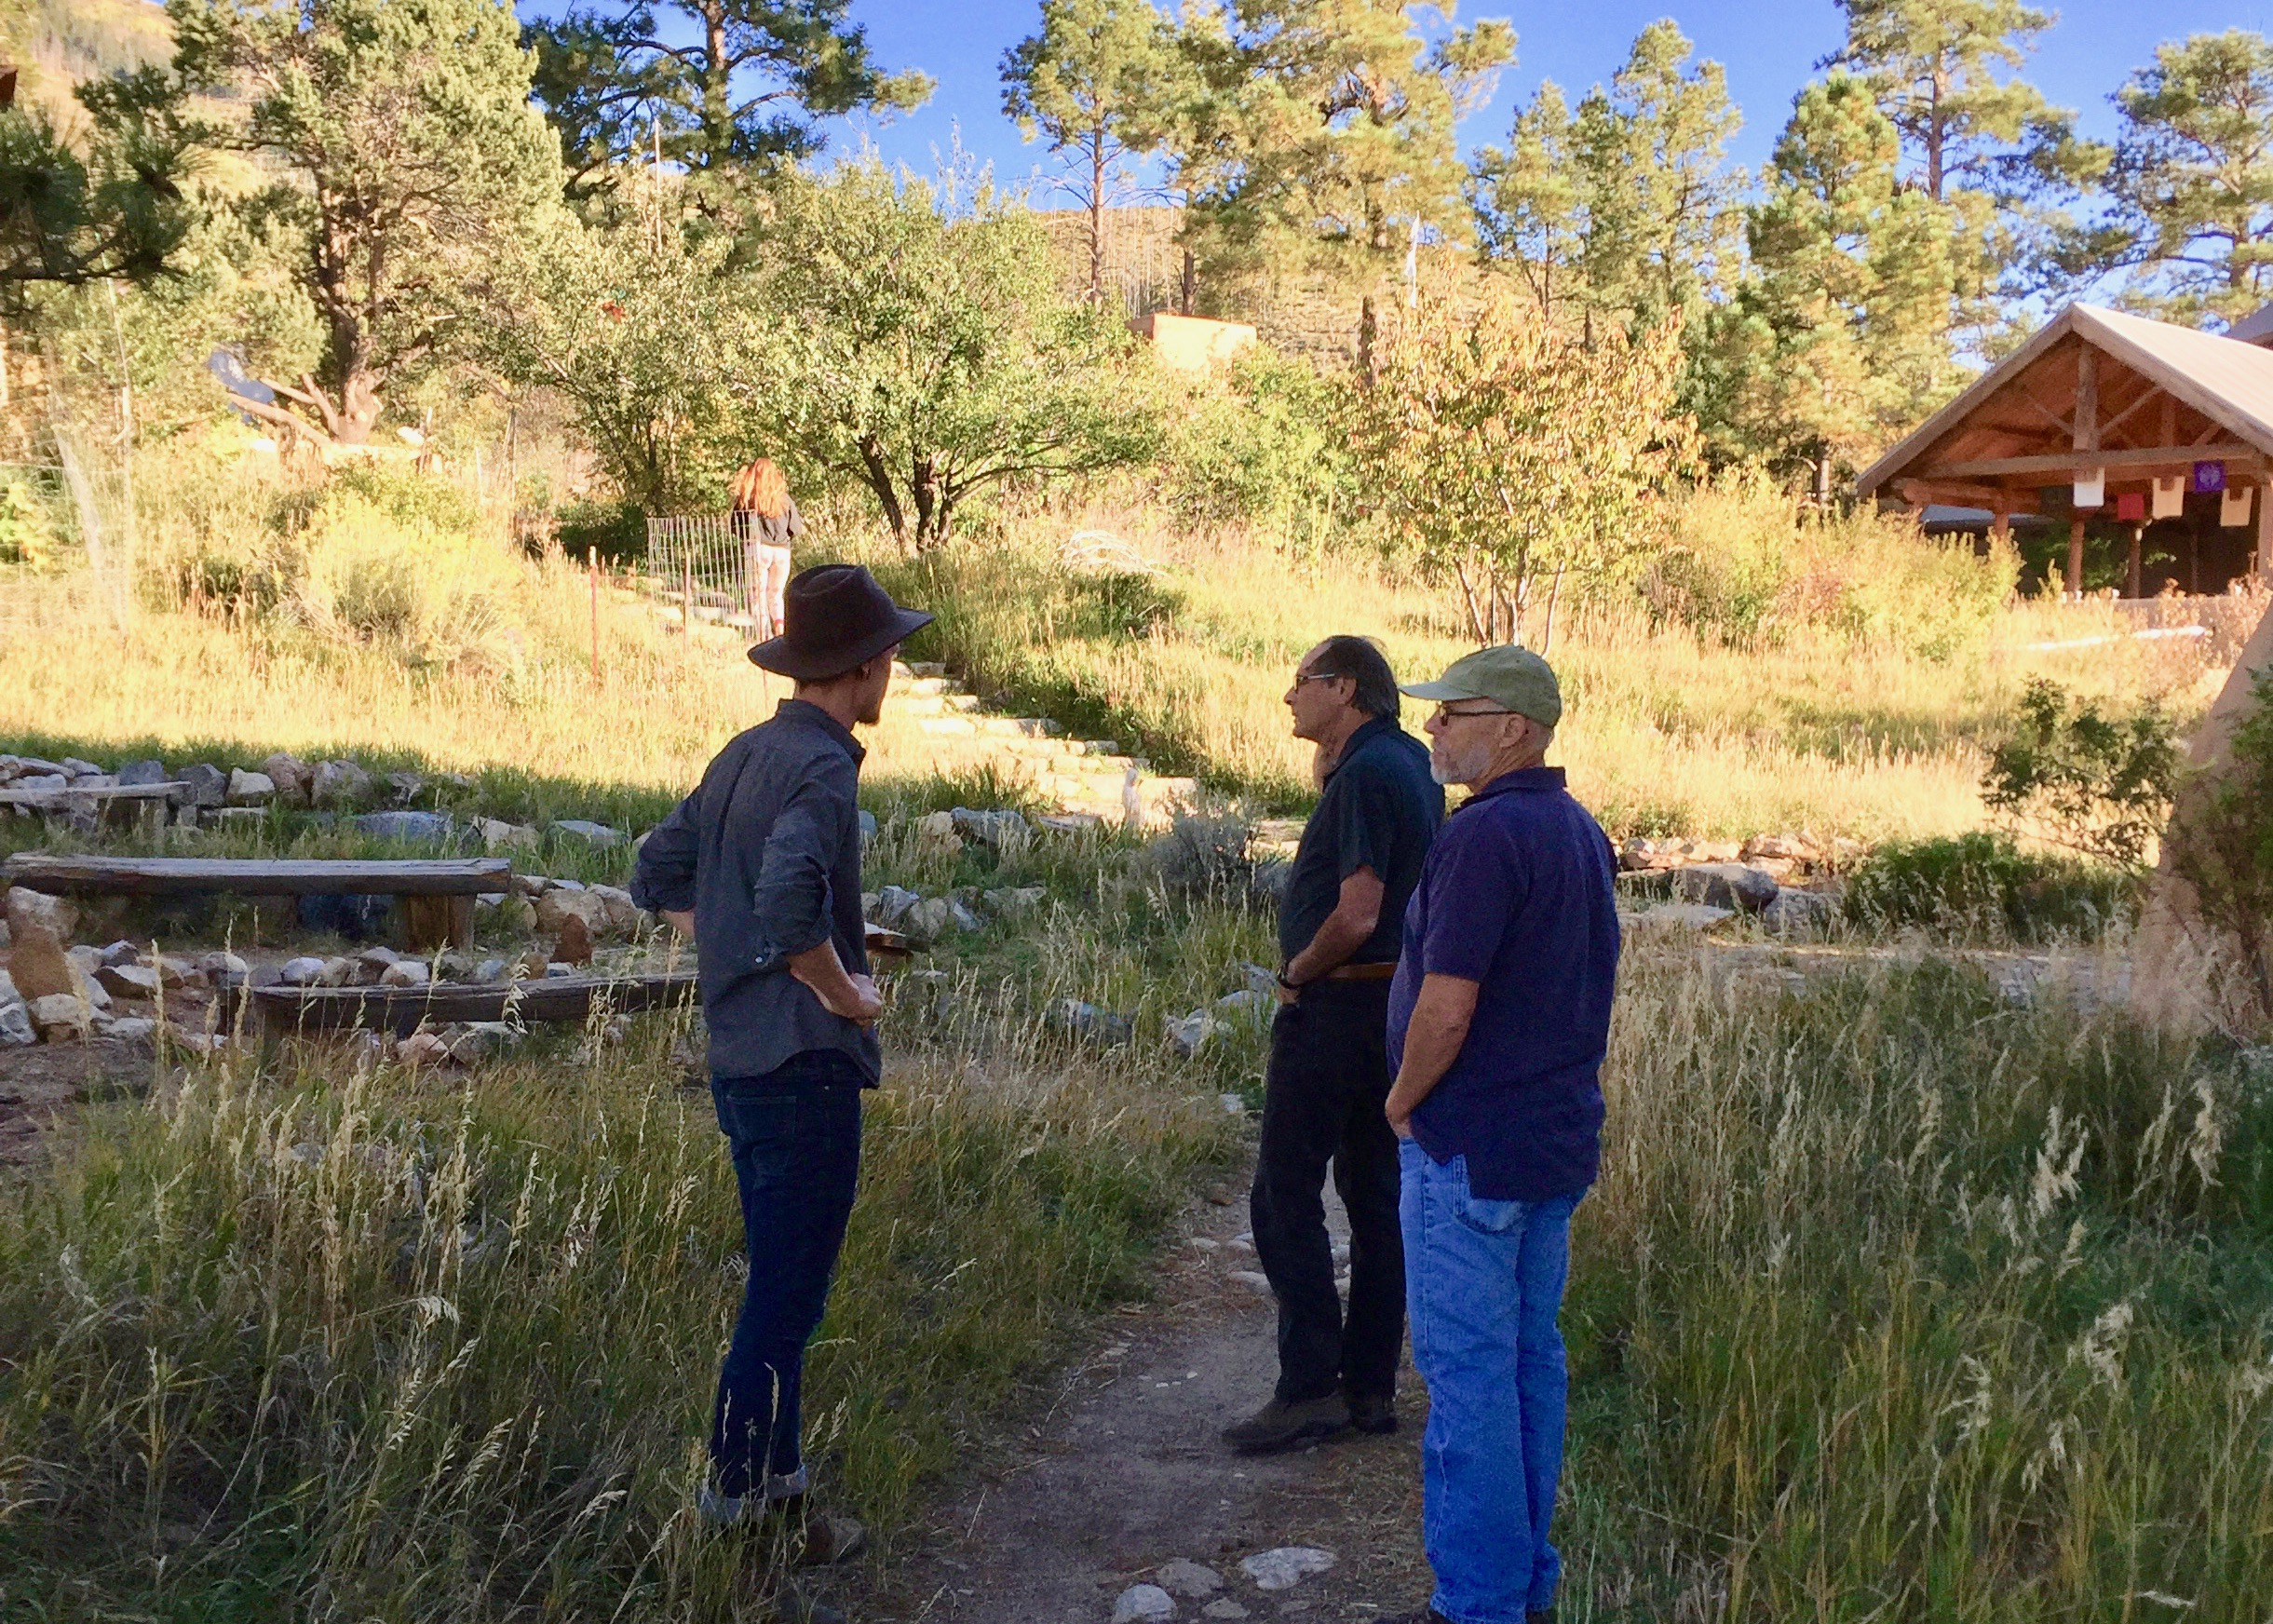 Lama coordinator, Lucas Kestrel Sego, scouting locations with filmmaker, Chuck Davis, and videographer, Randolph Pierce.